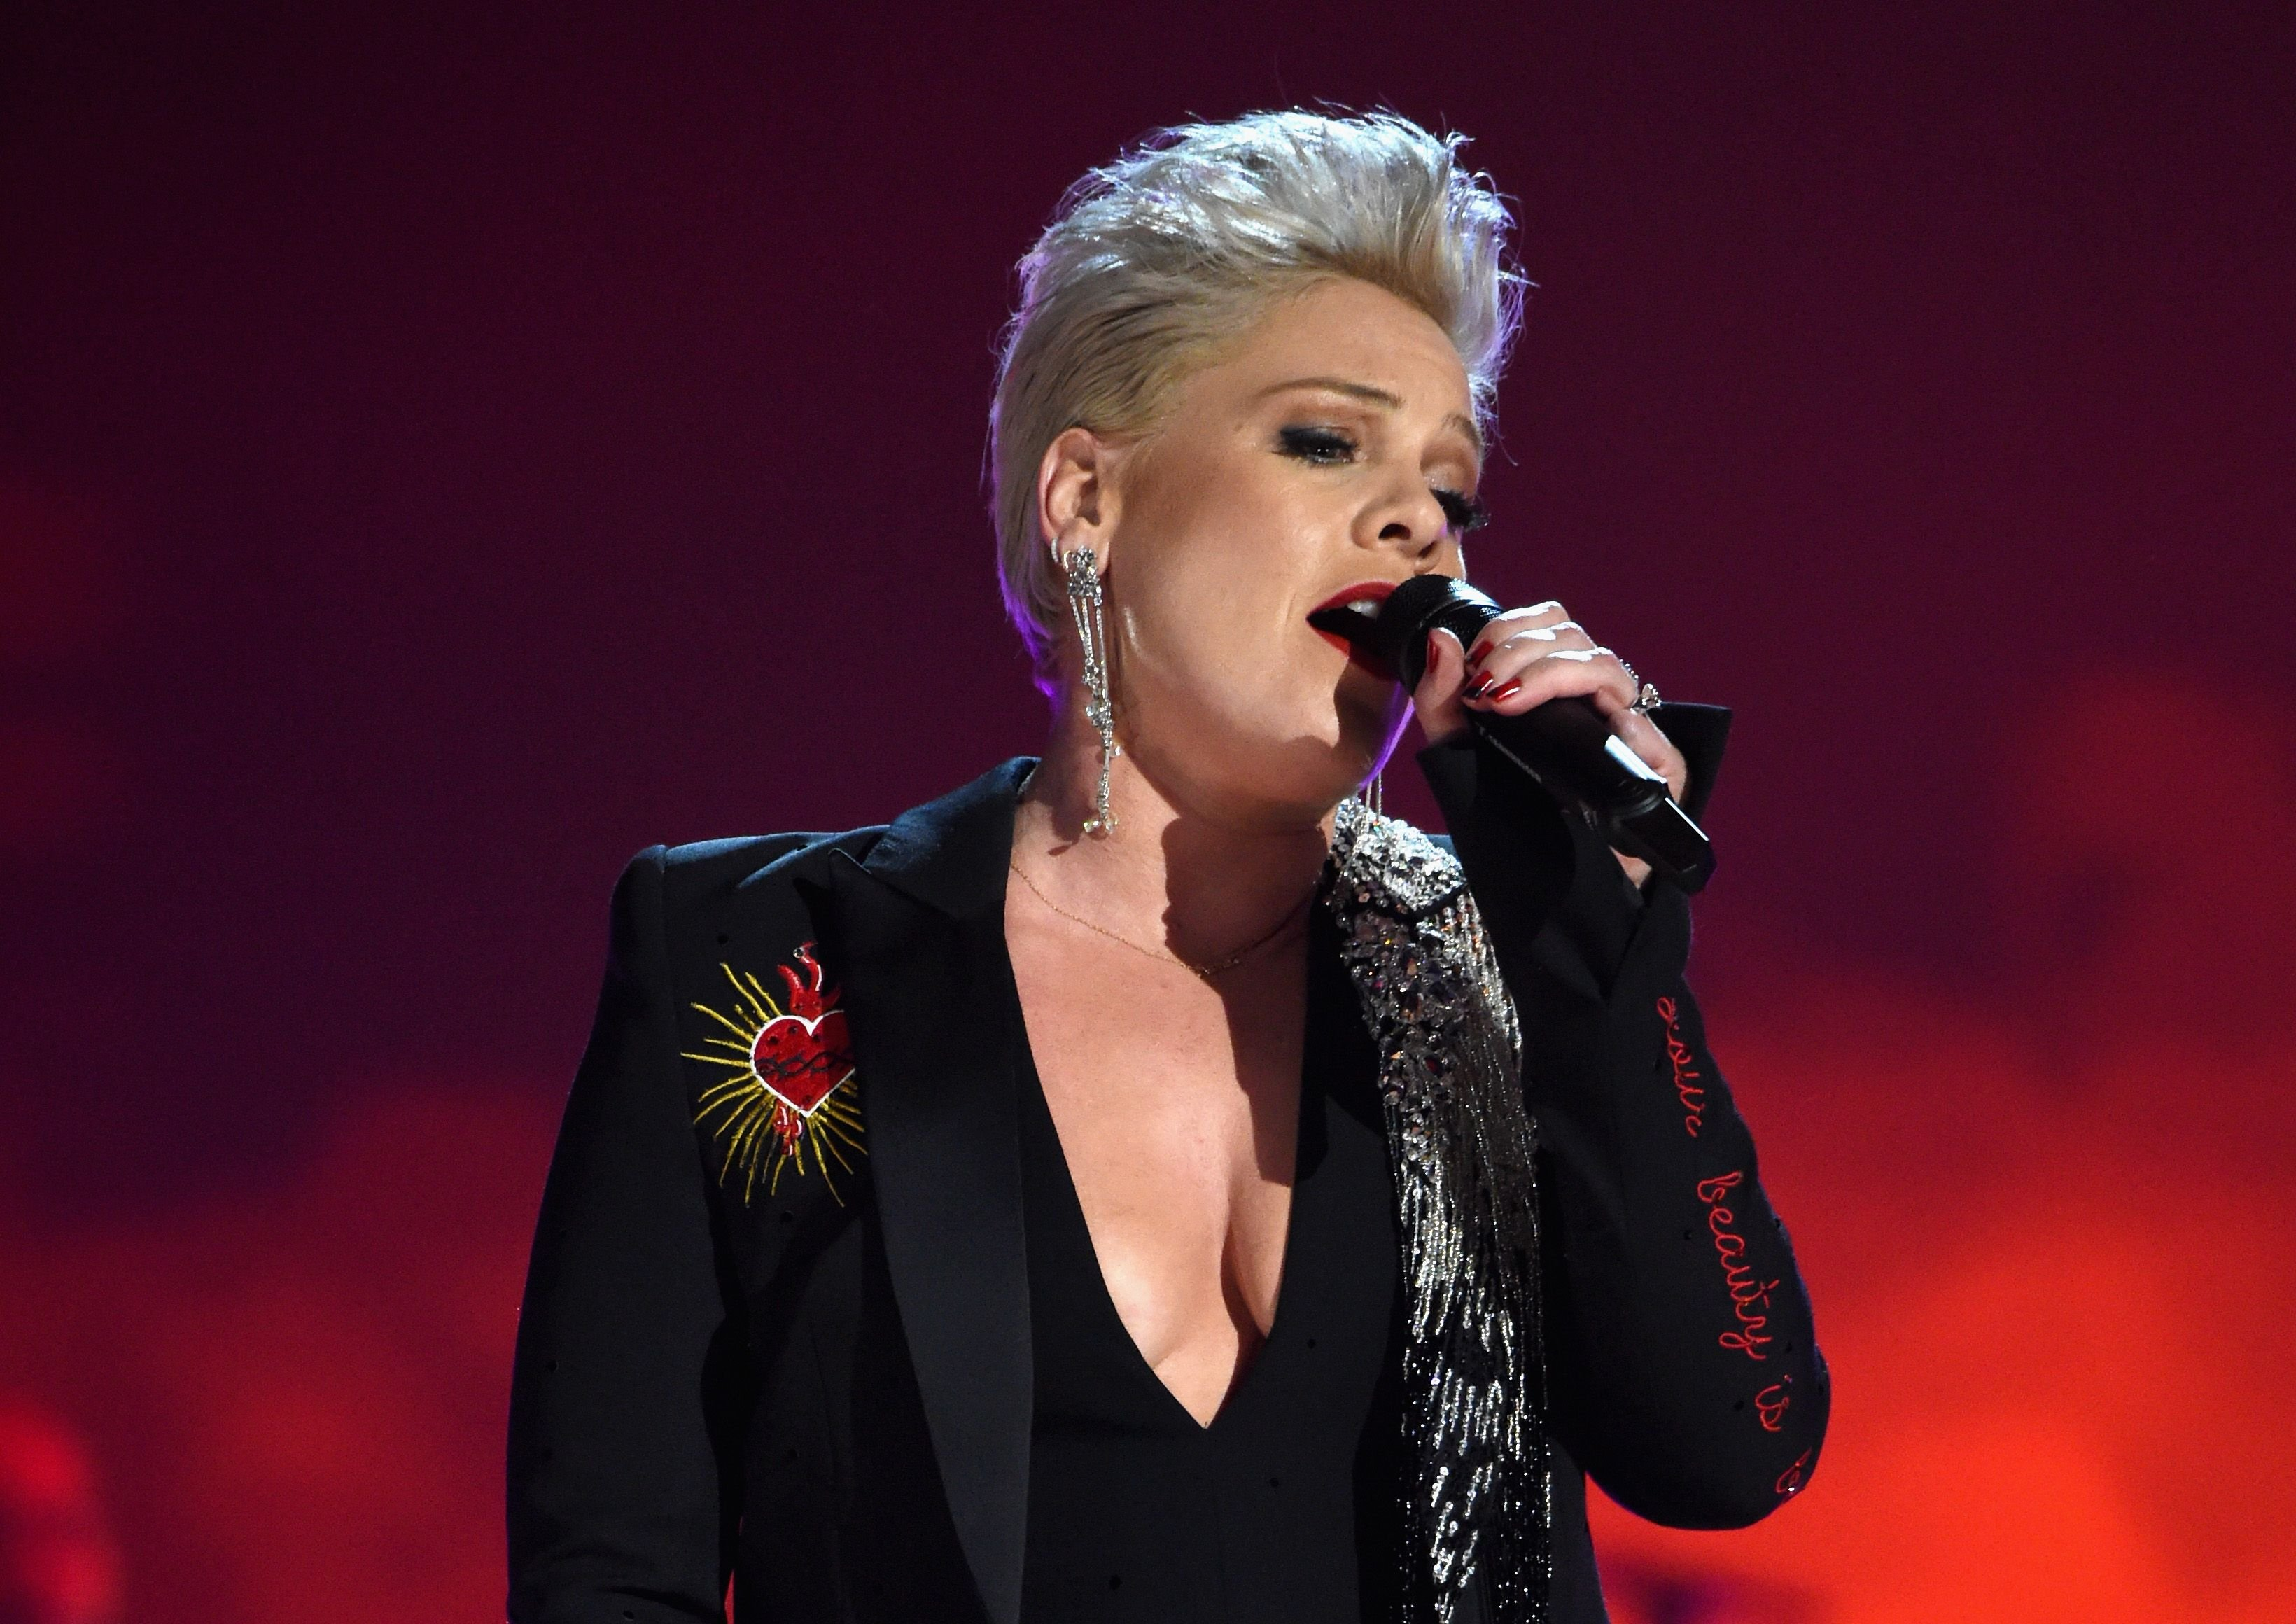 P!nk performs onstage at MusiCares Person of the Year honoring Dolly Parton at Los Angeles Convention Center on February 8, 2019 | Photo: Getty Images